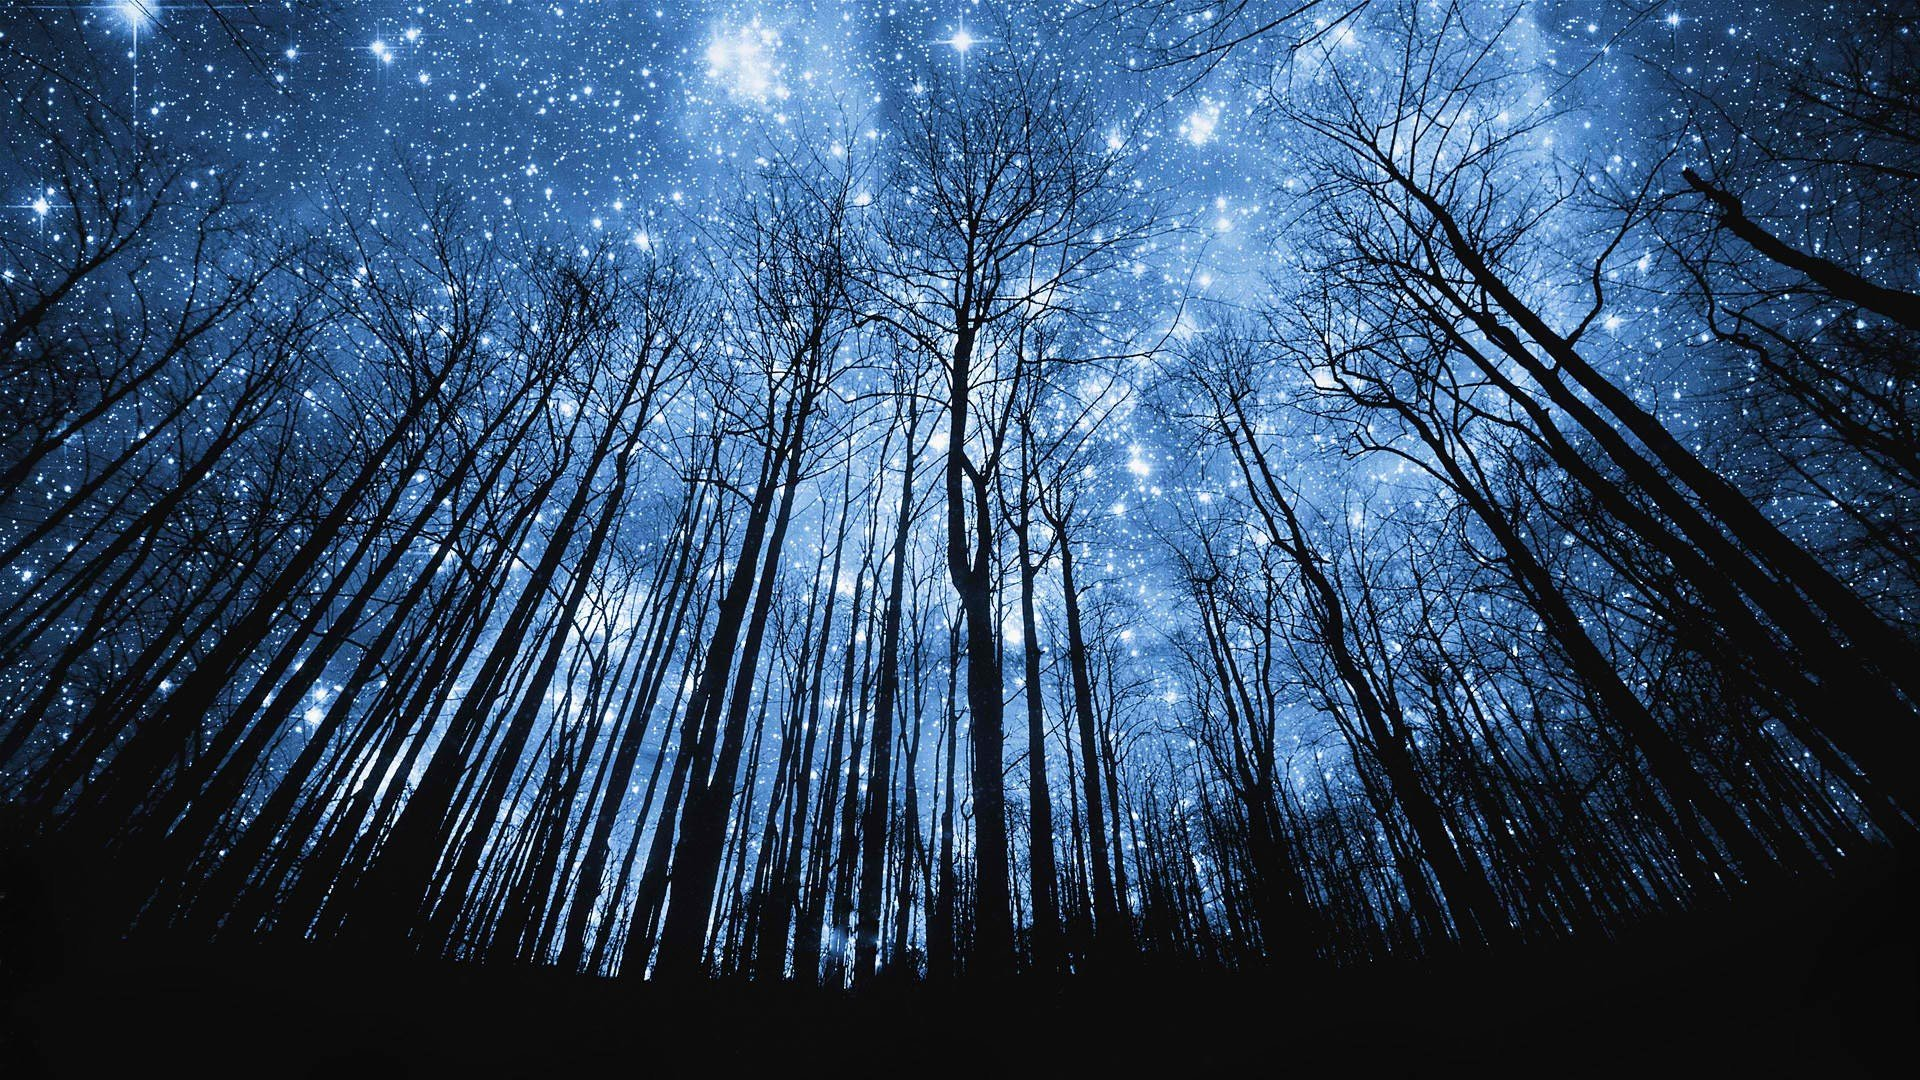 Night Stars Forests Trees - WallDevil